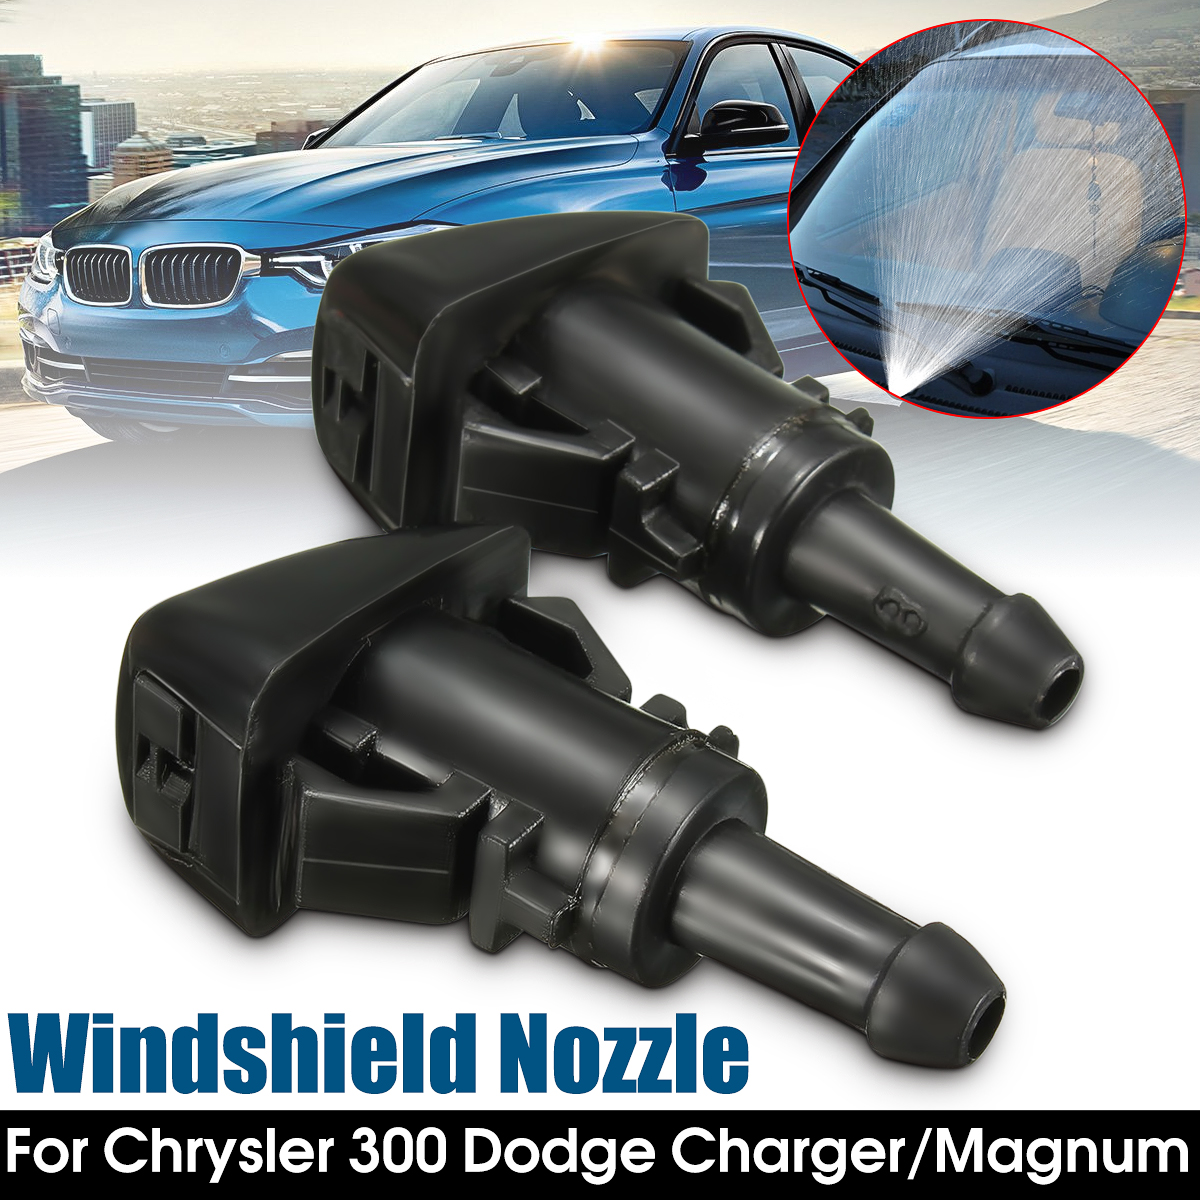 2016 Brand New 2x Windshield Water Sprayer Wash Washer Nozzle Wipers For Chrysler 300 for Dodge/ Magnum Charger image